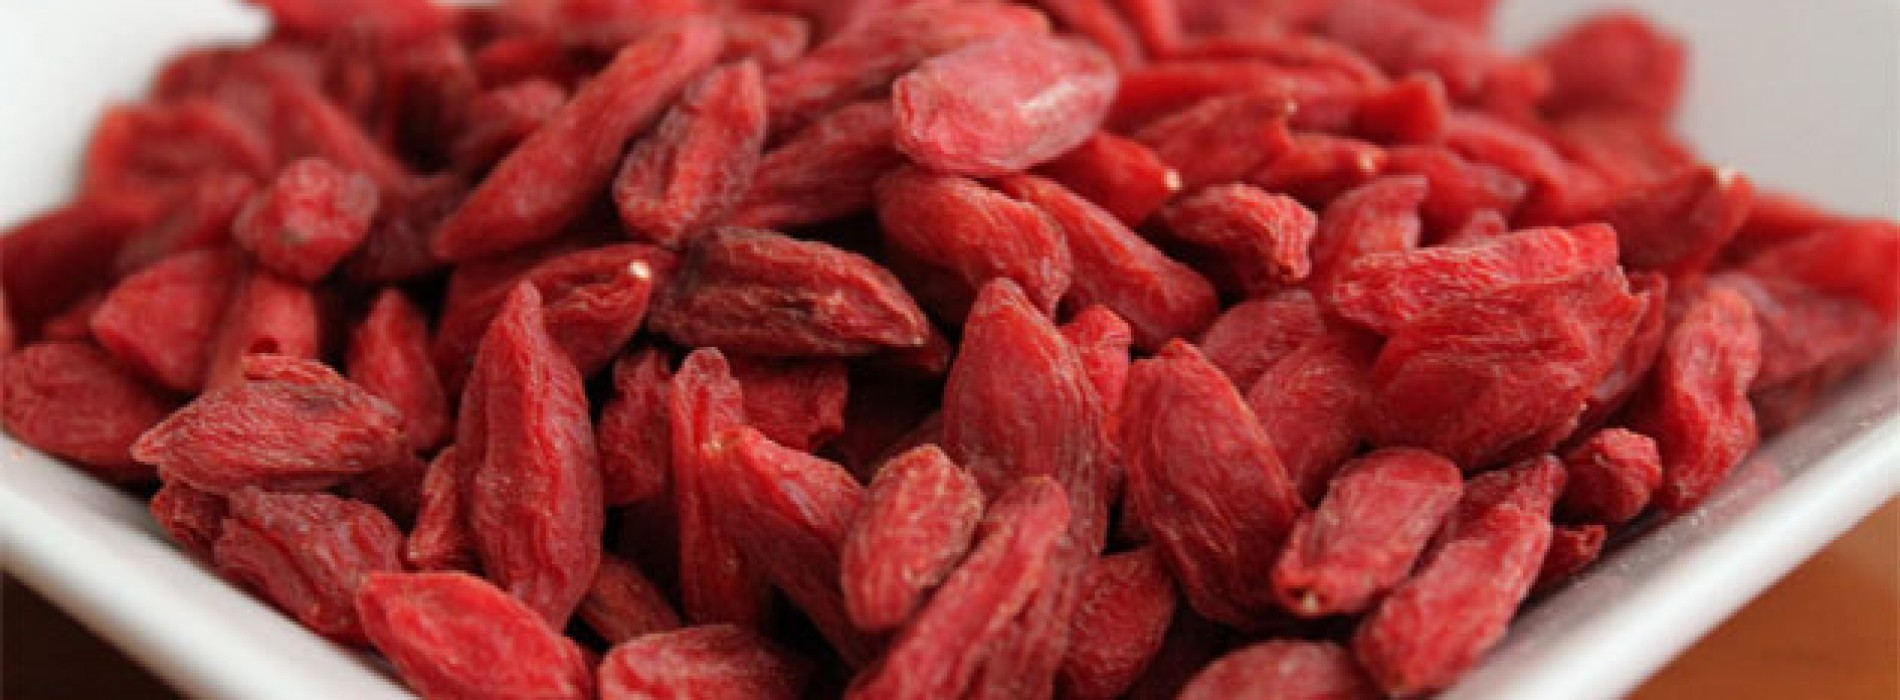 What's So Great About Goji?